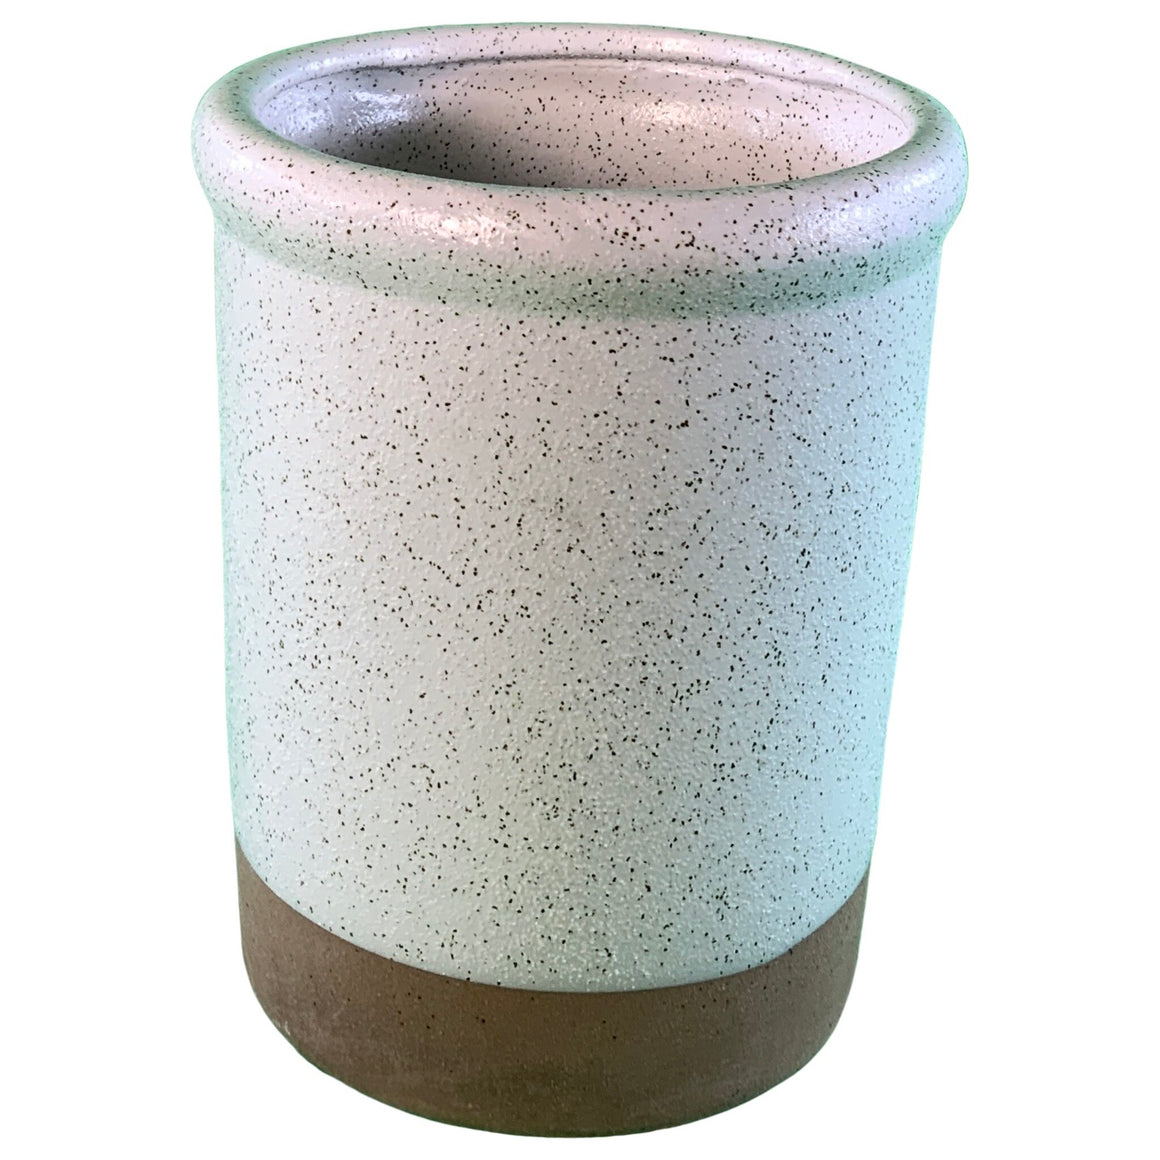 Stoneware Vase Speckled Glaze Small - Smith & Hawken™